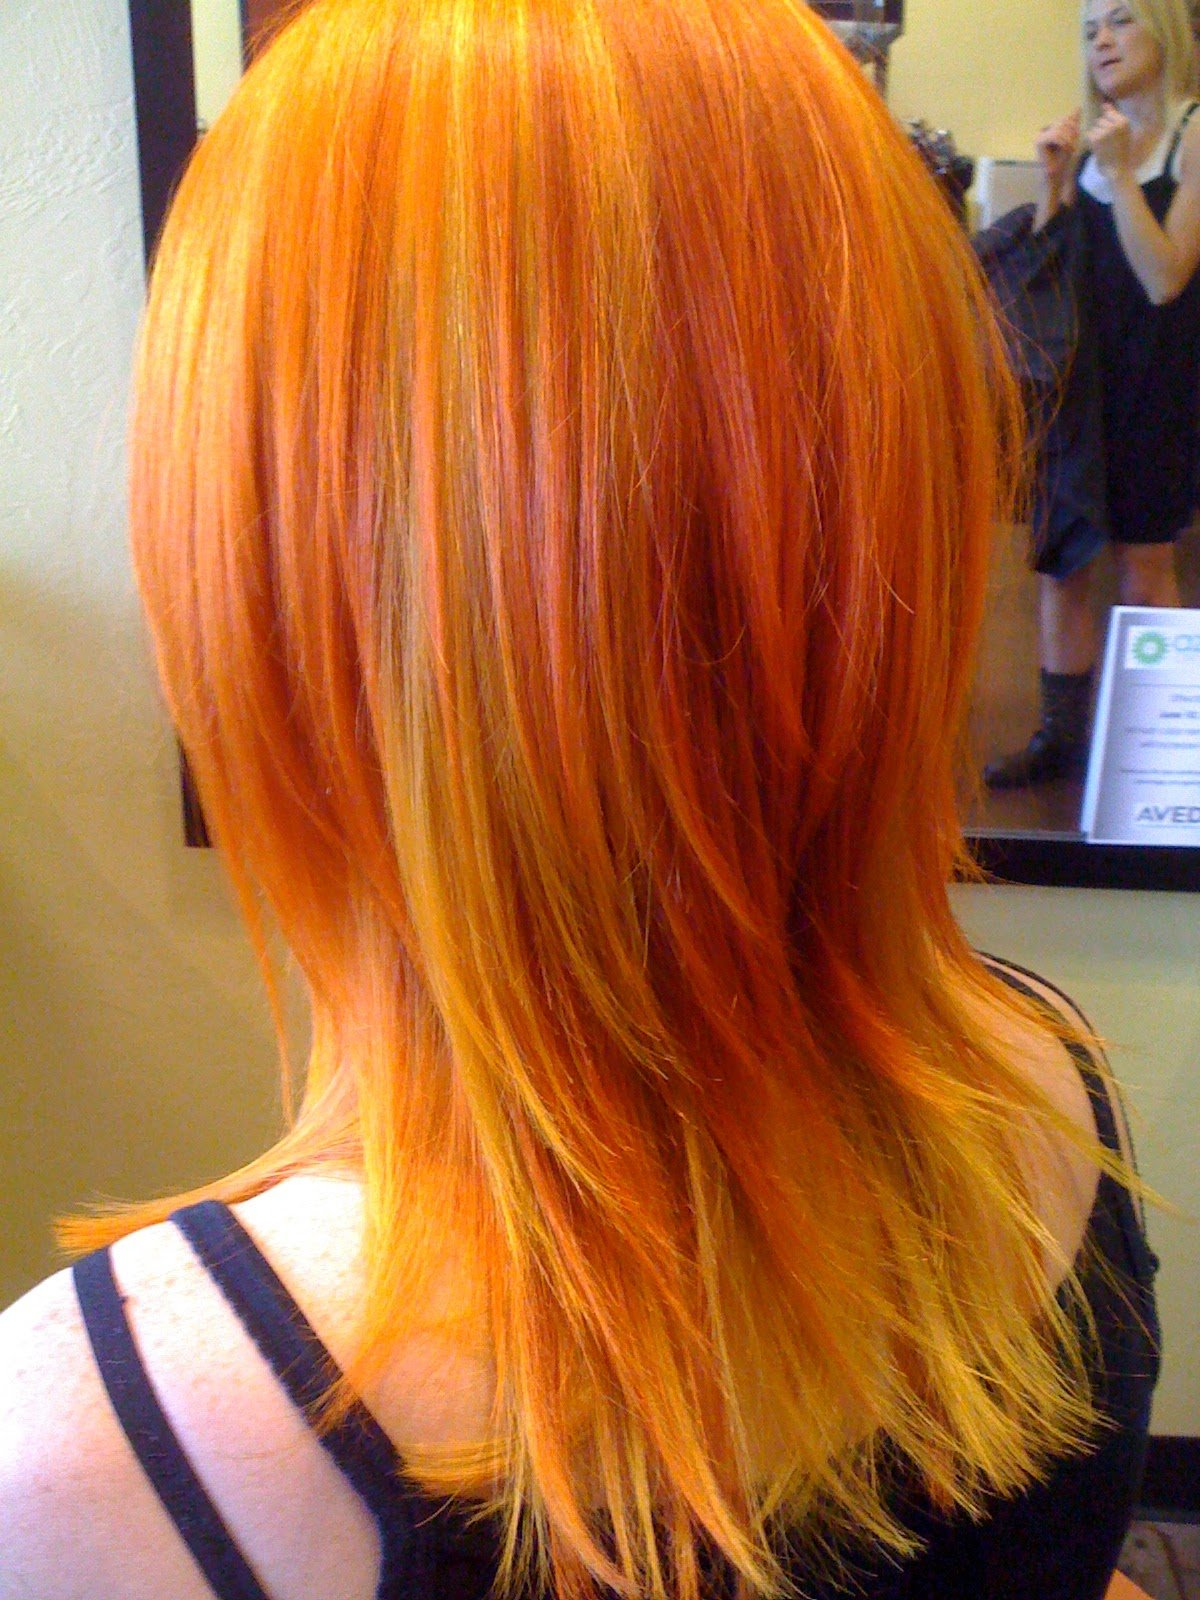 The Best Hair By Victoria Do Fashion Colors With Aveda Pictures